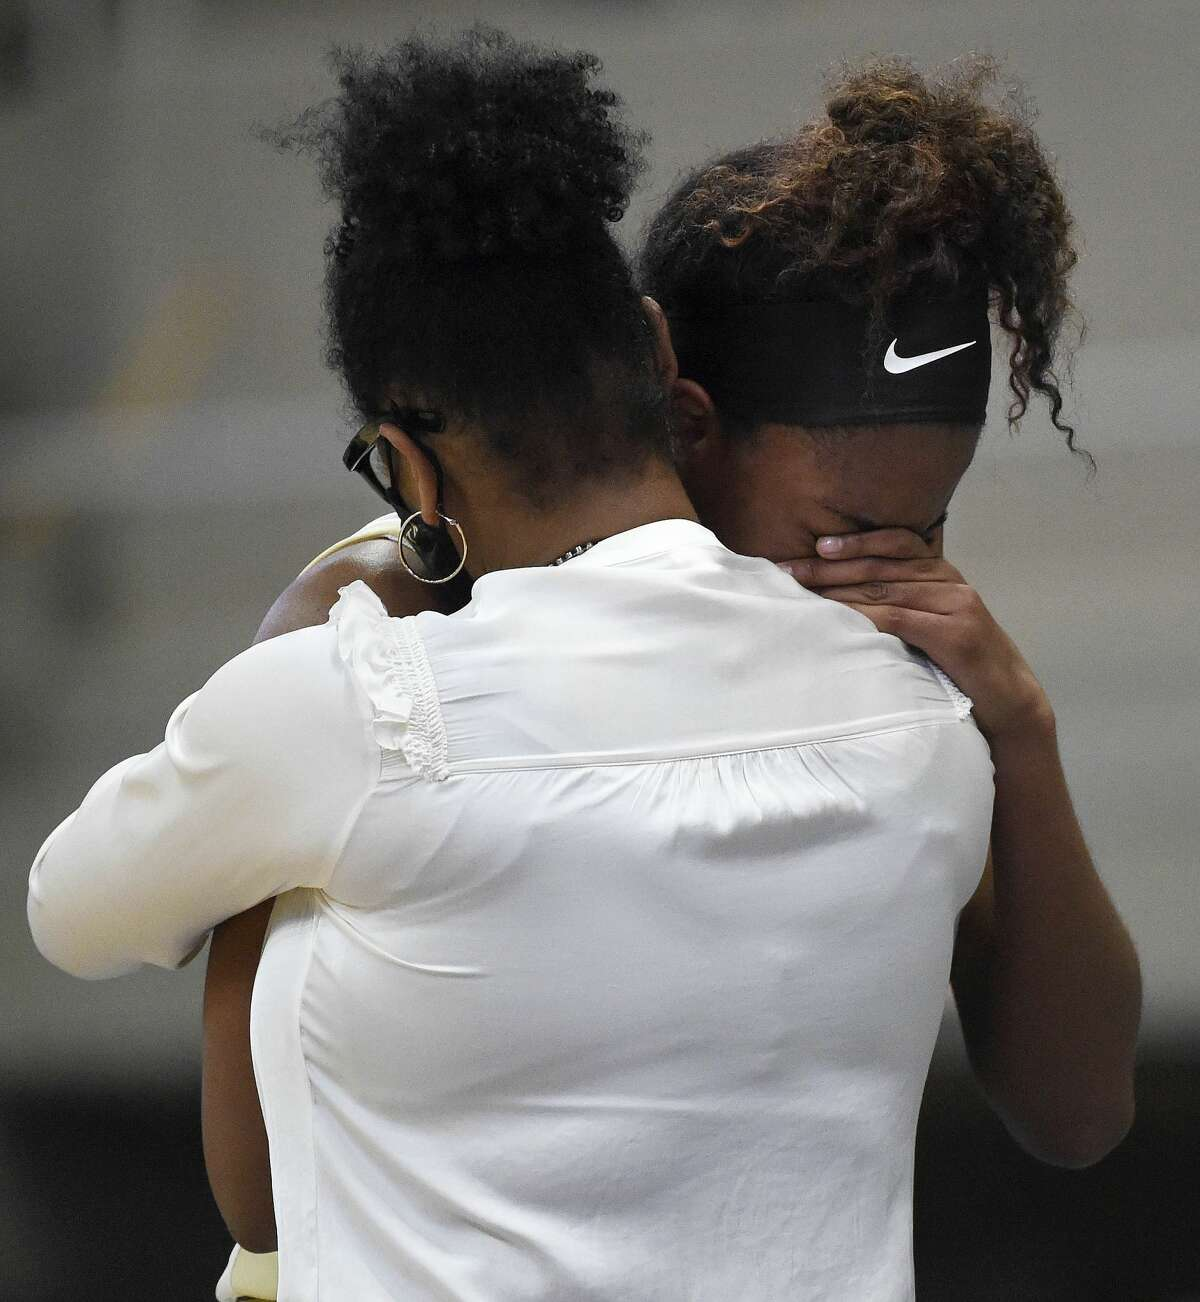 Foster's Kaiya Wynn, right, hugs head coach Savitria Williams-Smith in the final moments of the team's loss to College Station during the second half of a 5A Region III semifinal high school basketball playoff game, Friday, Feb. 26, 2021, in Katy, TX.